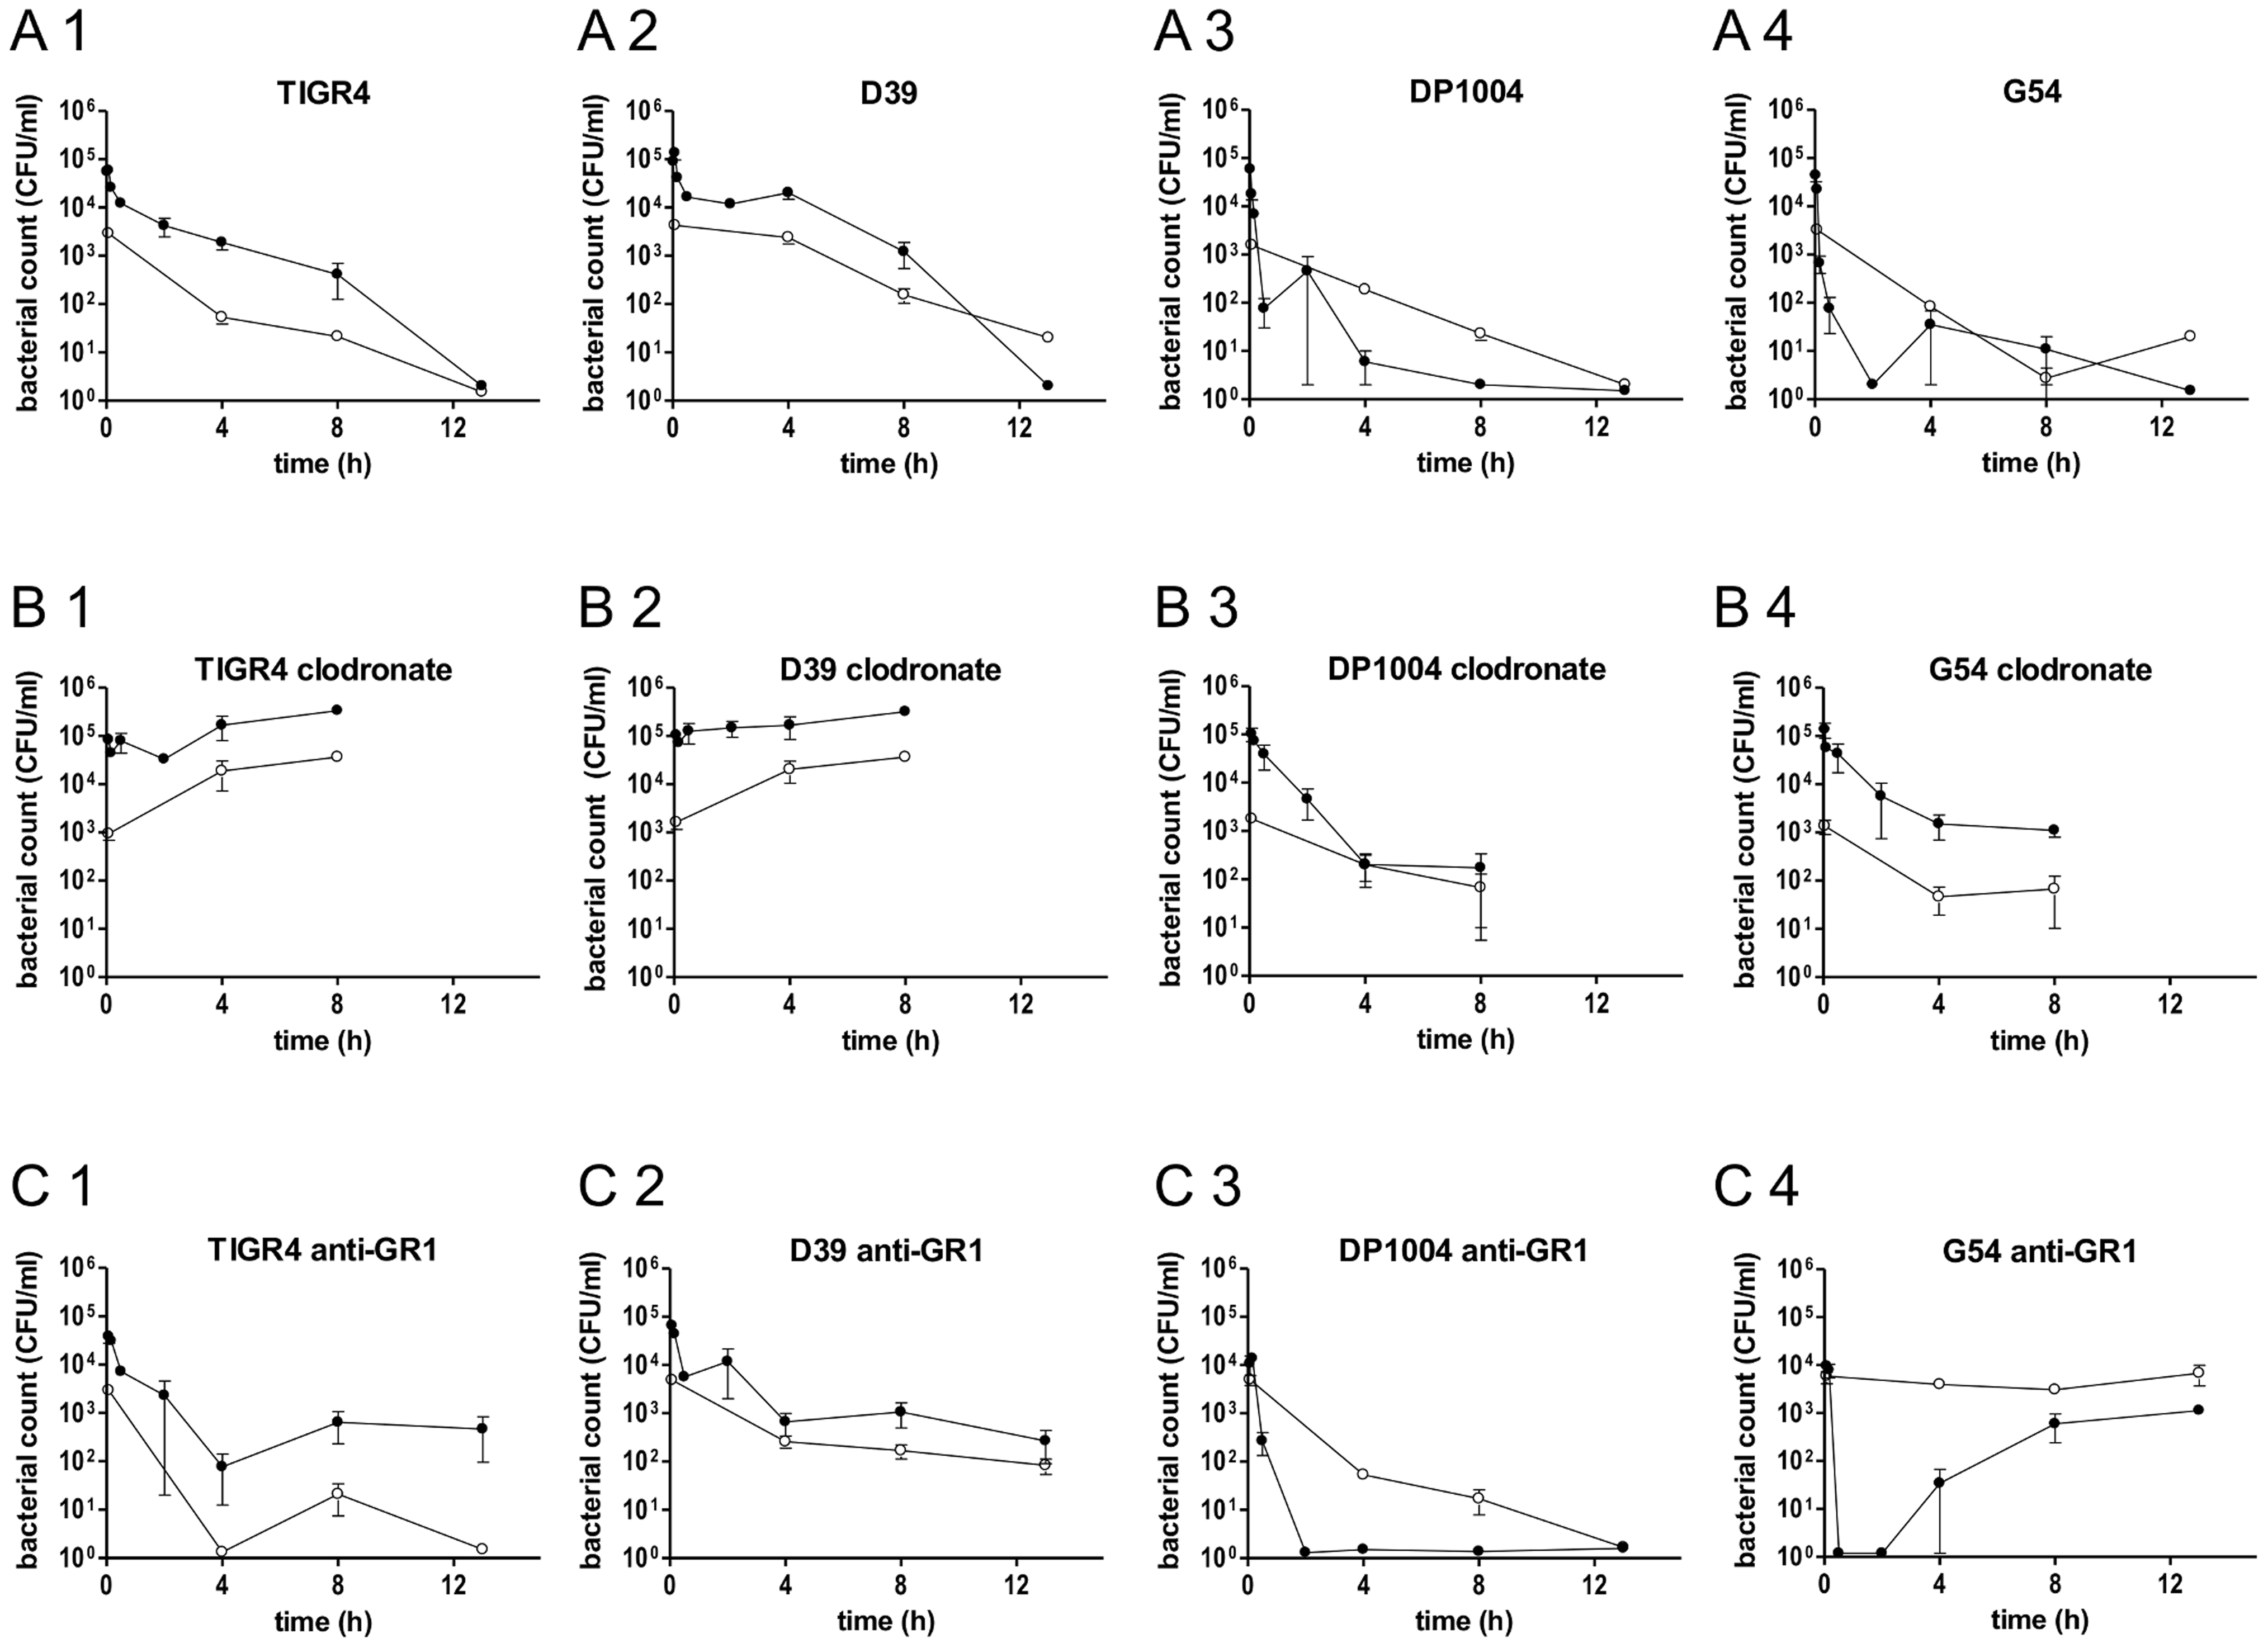 Bacterial counts in blood and spleen of BALB/c mice depleted of neutrophils or macrophages.